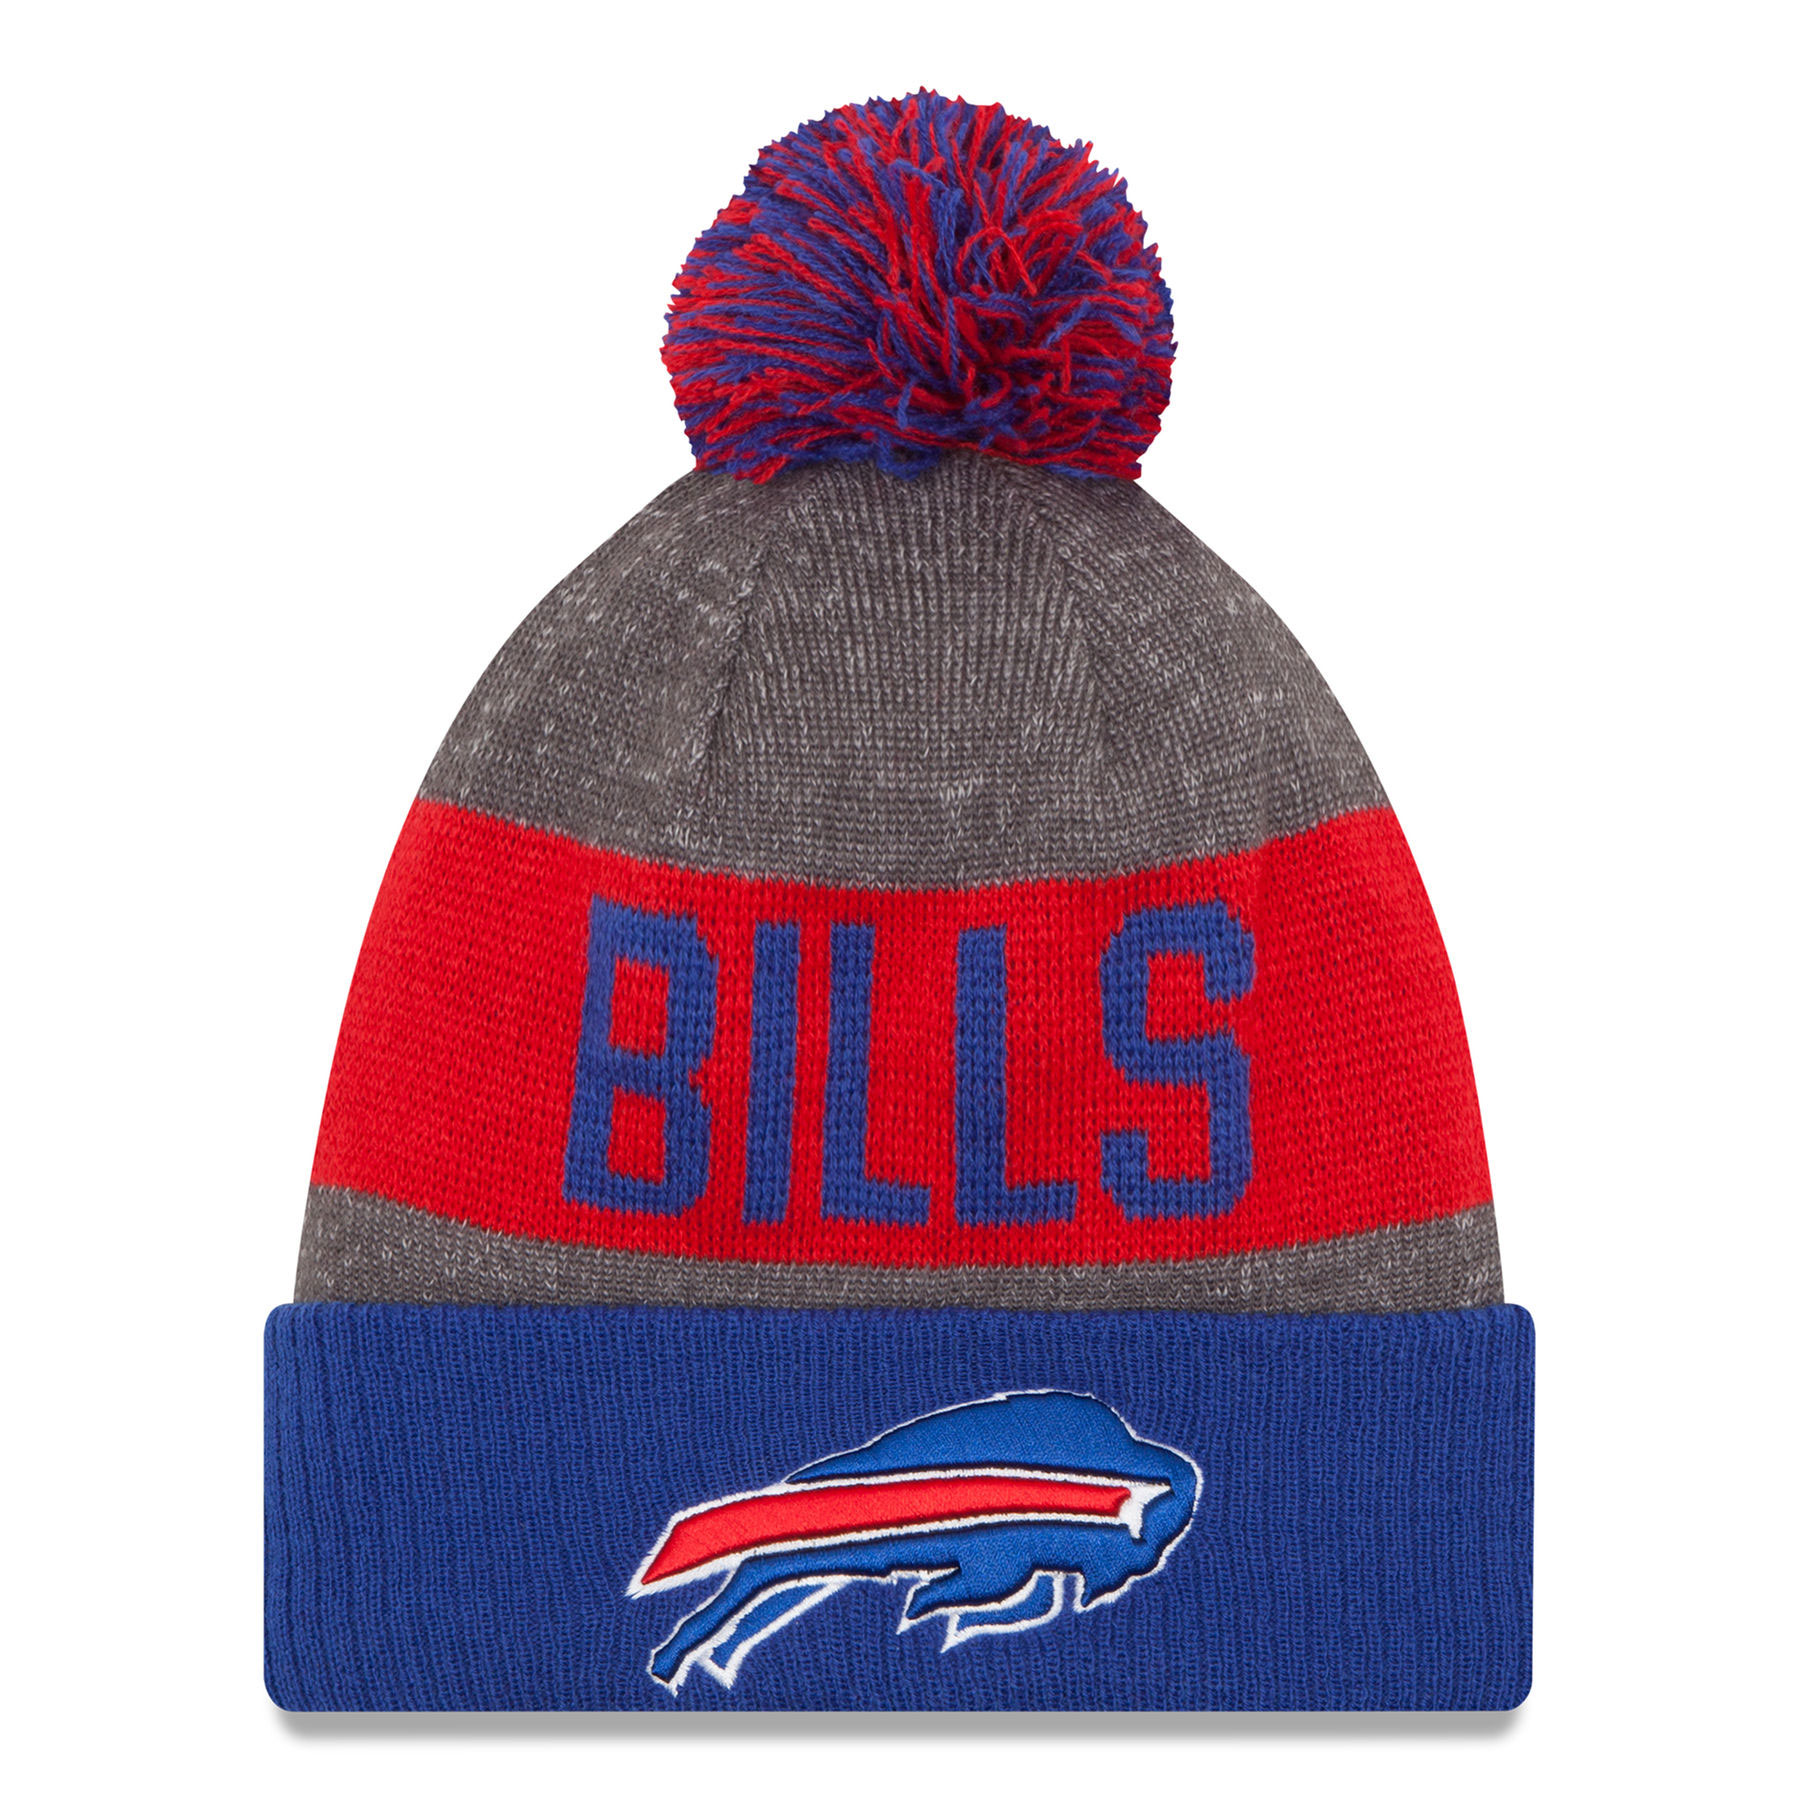 Buffalo Bills New Era 2016 NFL Official Sideline Sport Knit Hat